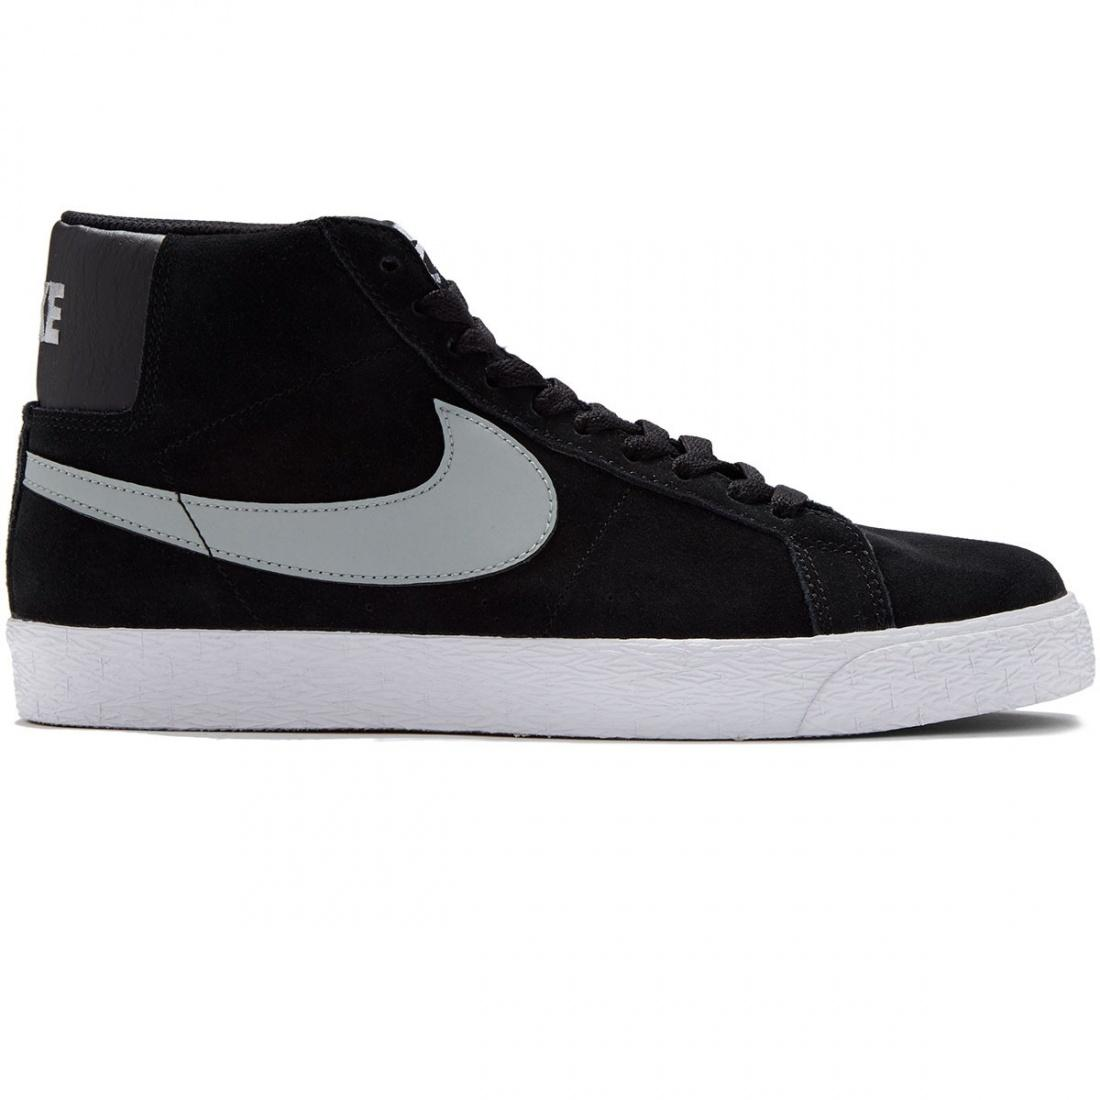 цена Nike SB Кеды Nike SB Blazer SB Premium Se black-base grey-white 9.5 онлайн в 2017 году